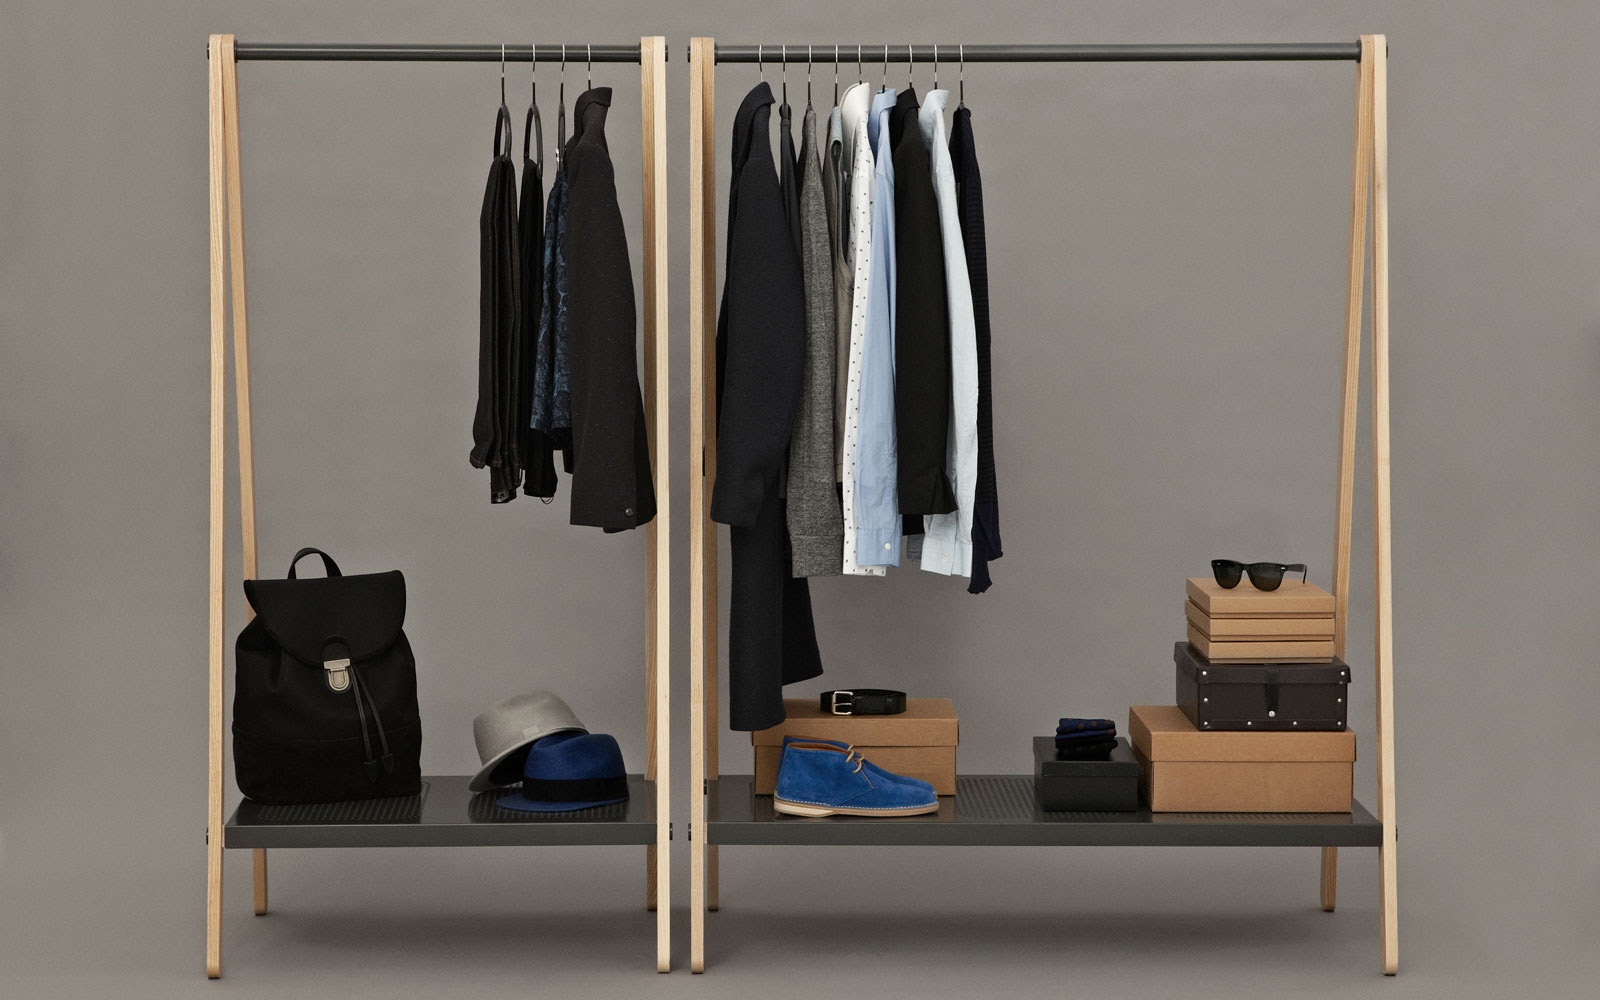 Diy Wooden Clothes Rack Amazing Wood Projects